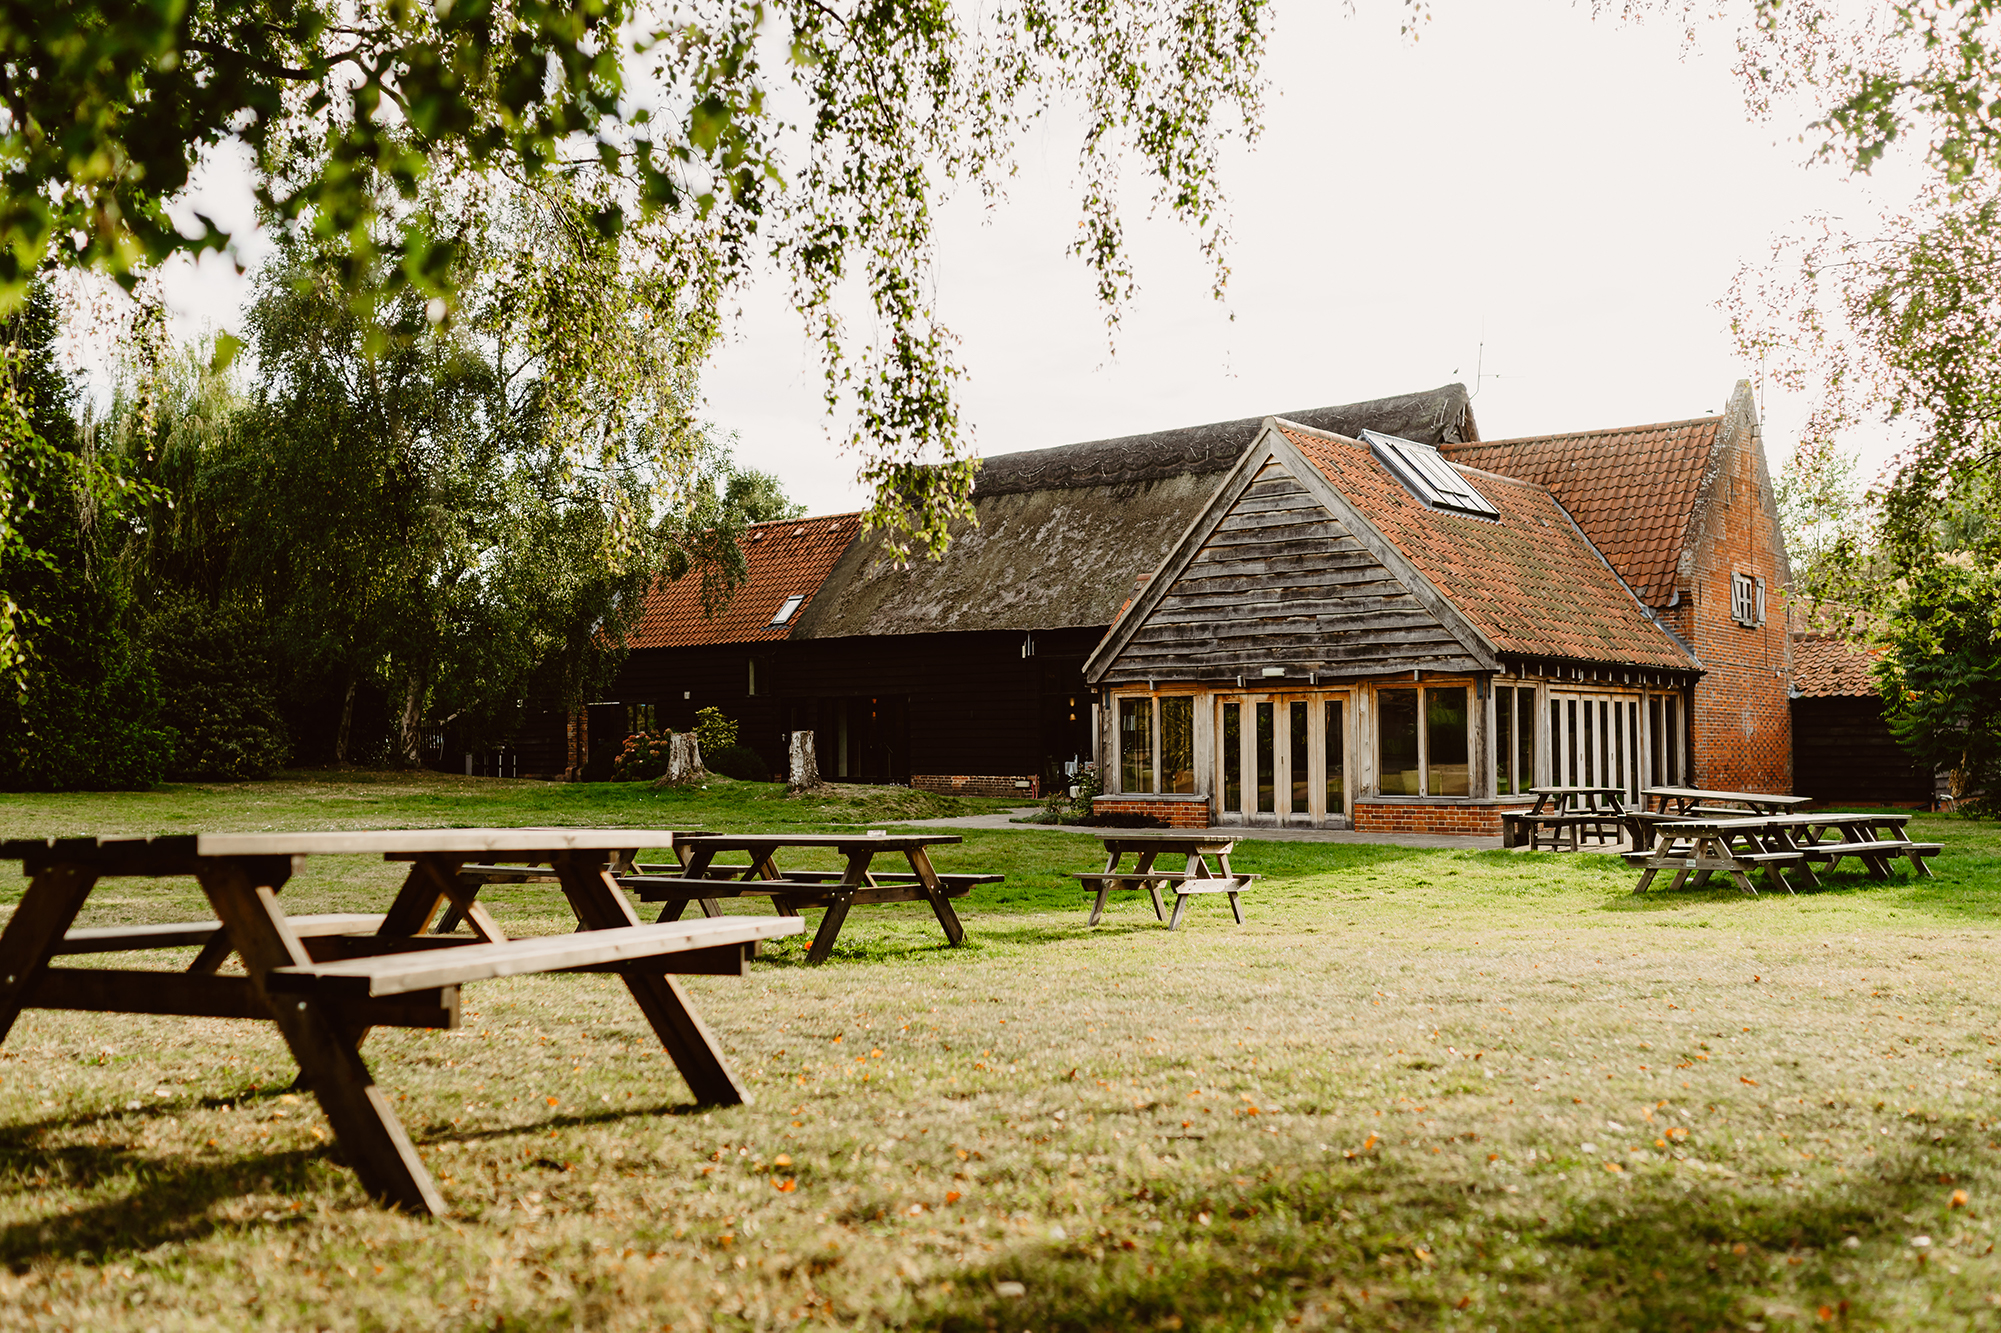 Ivy House Country Hotel Wedding Venue Backyard with Picnic Tables